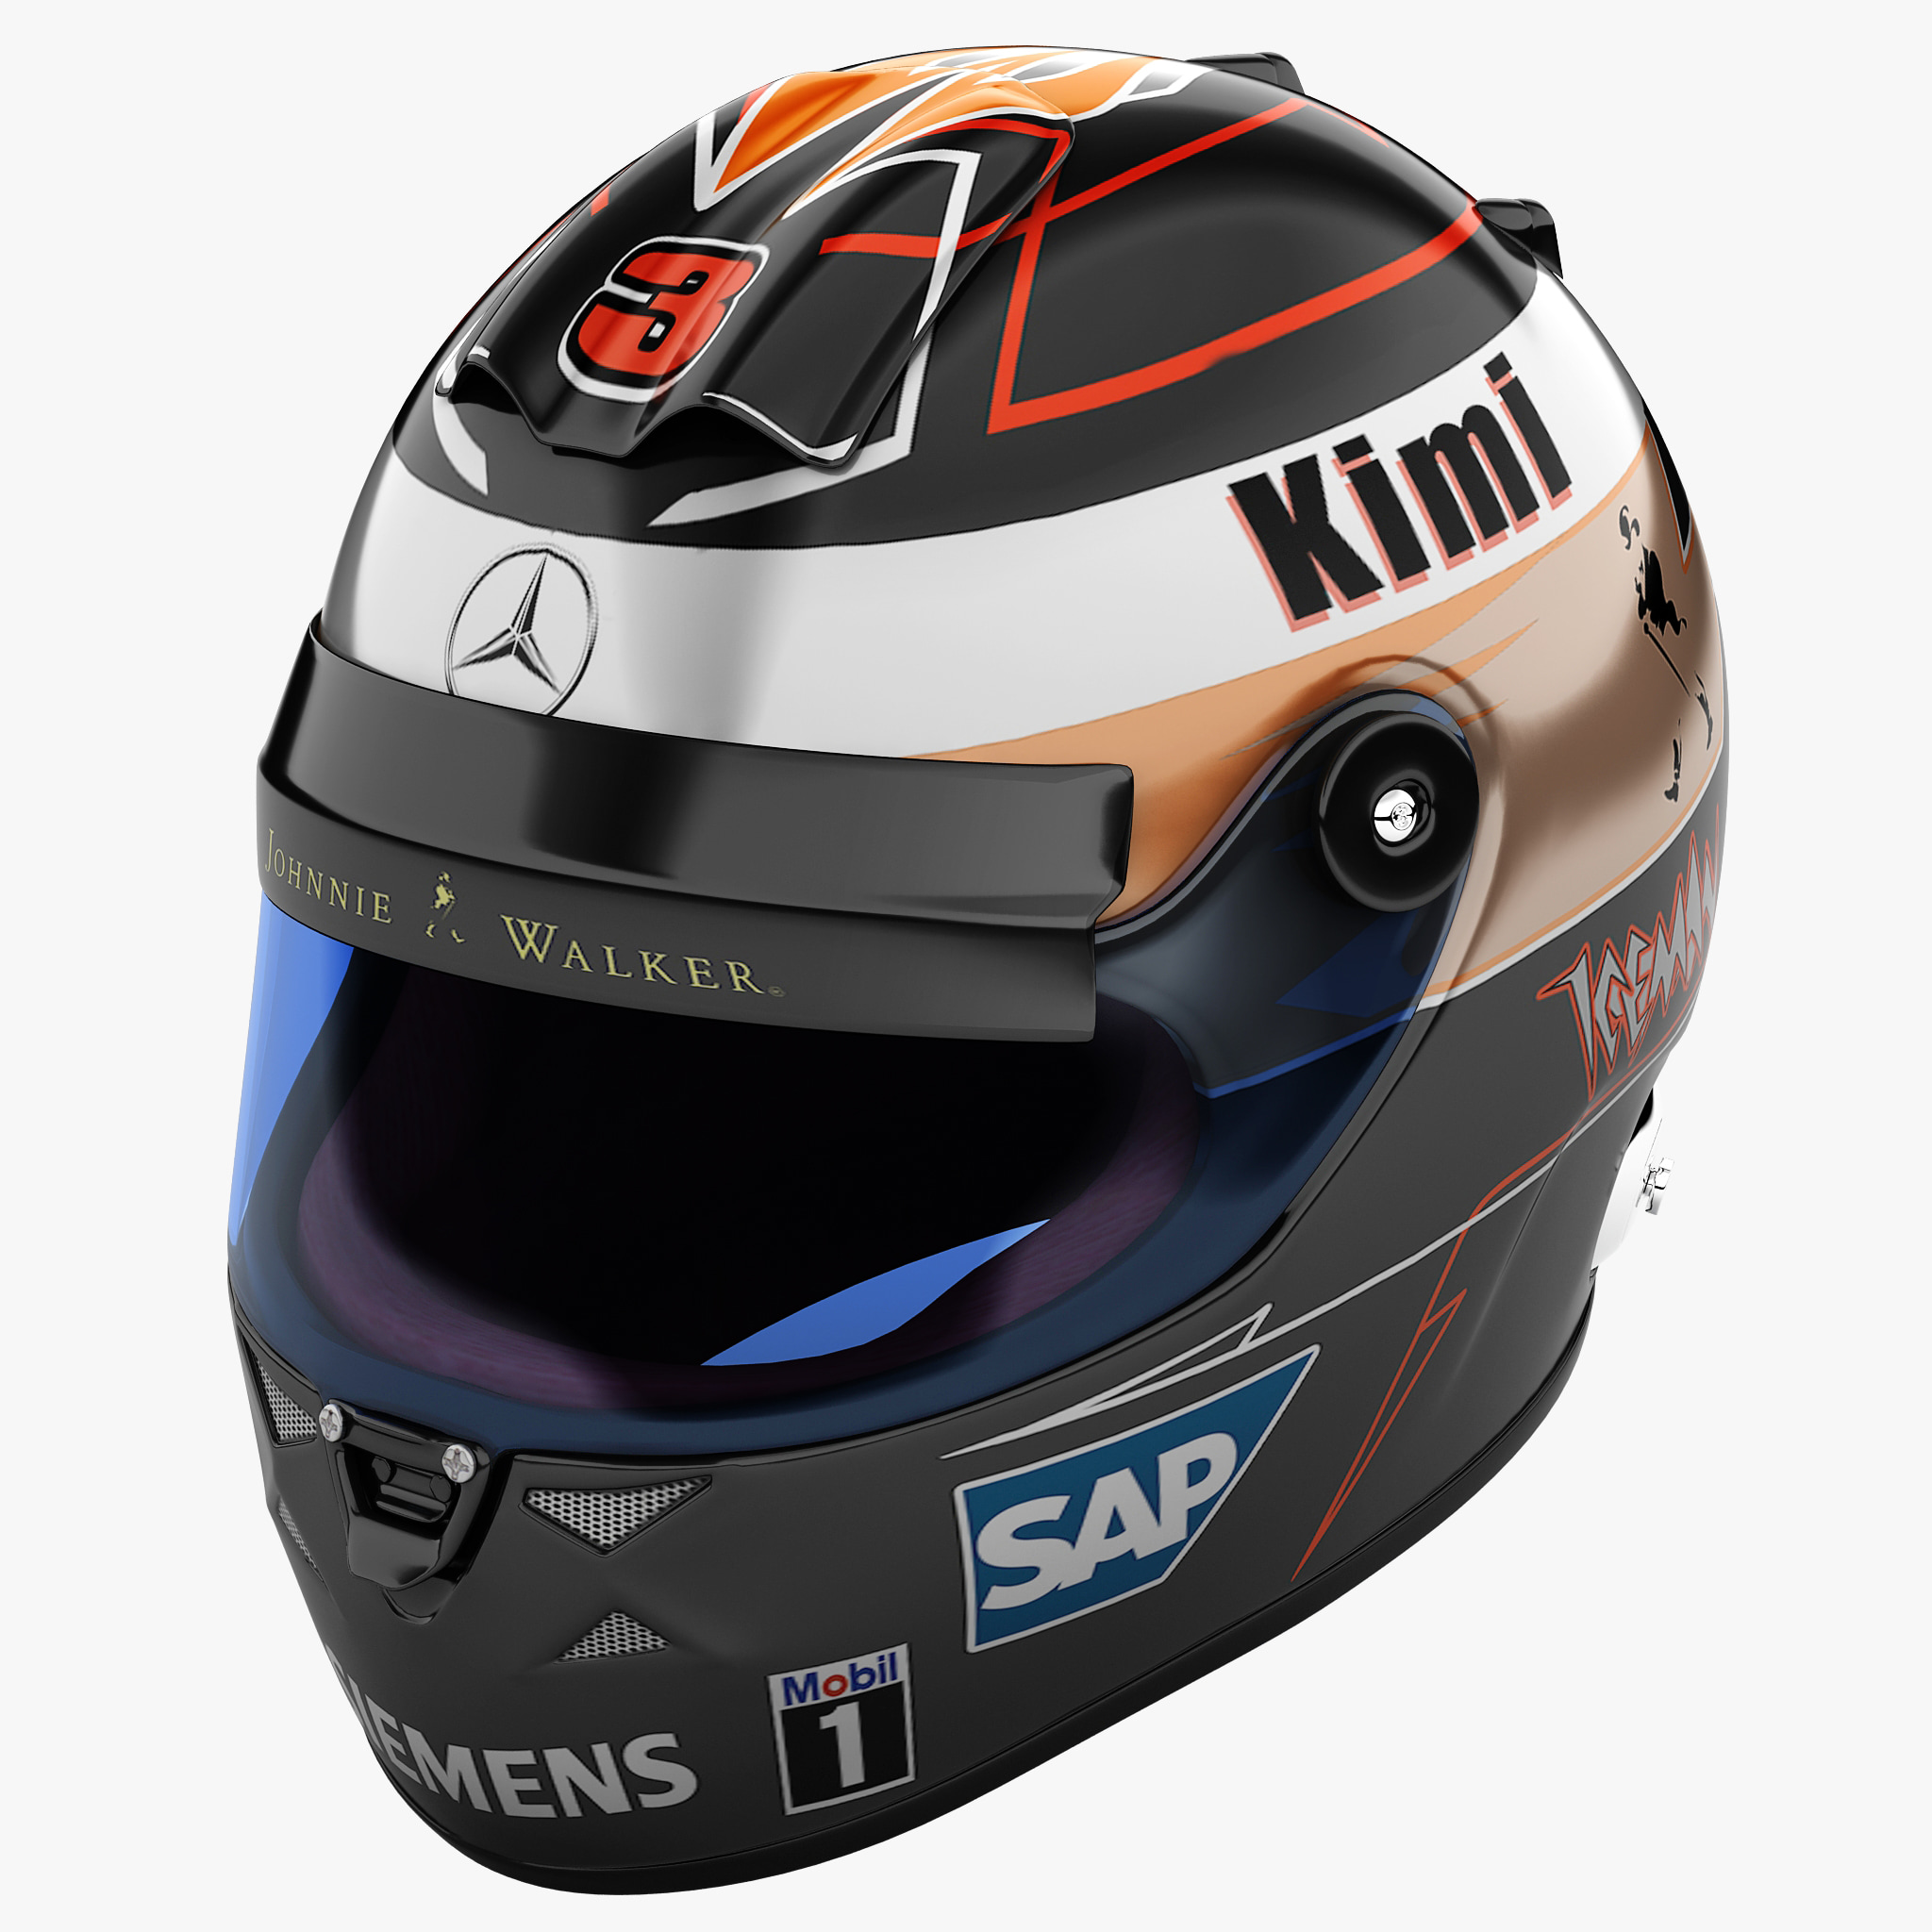 Racing Helmet Mercedes_1.jpg